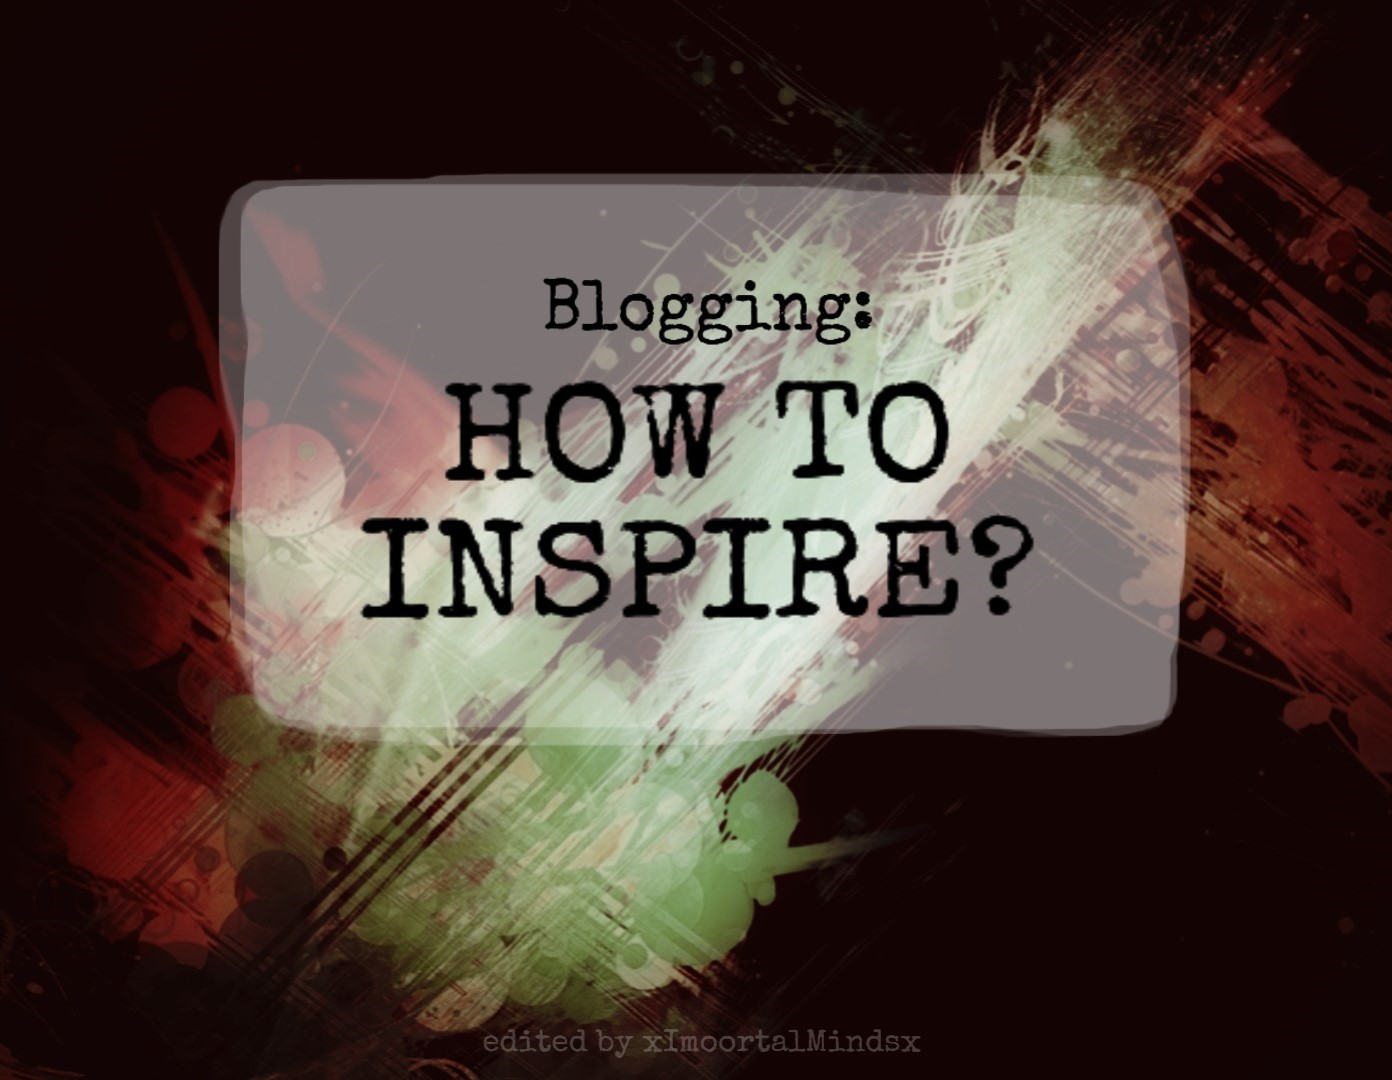 Blogging: HOW TO INSPIRE?